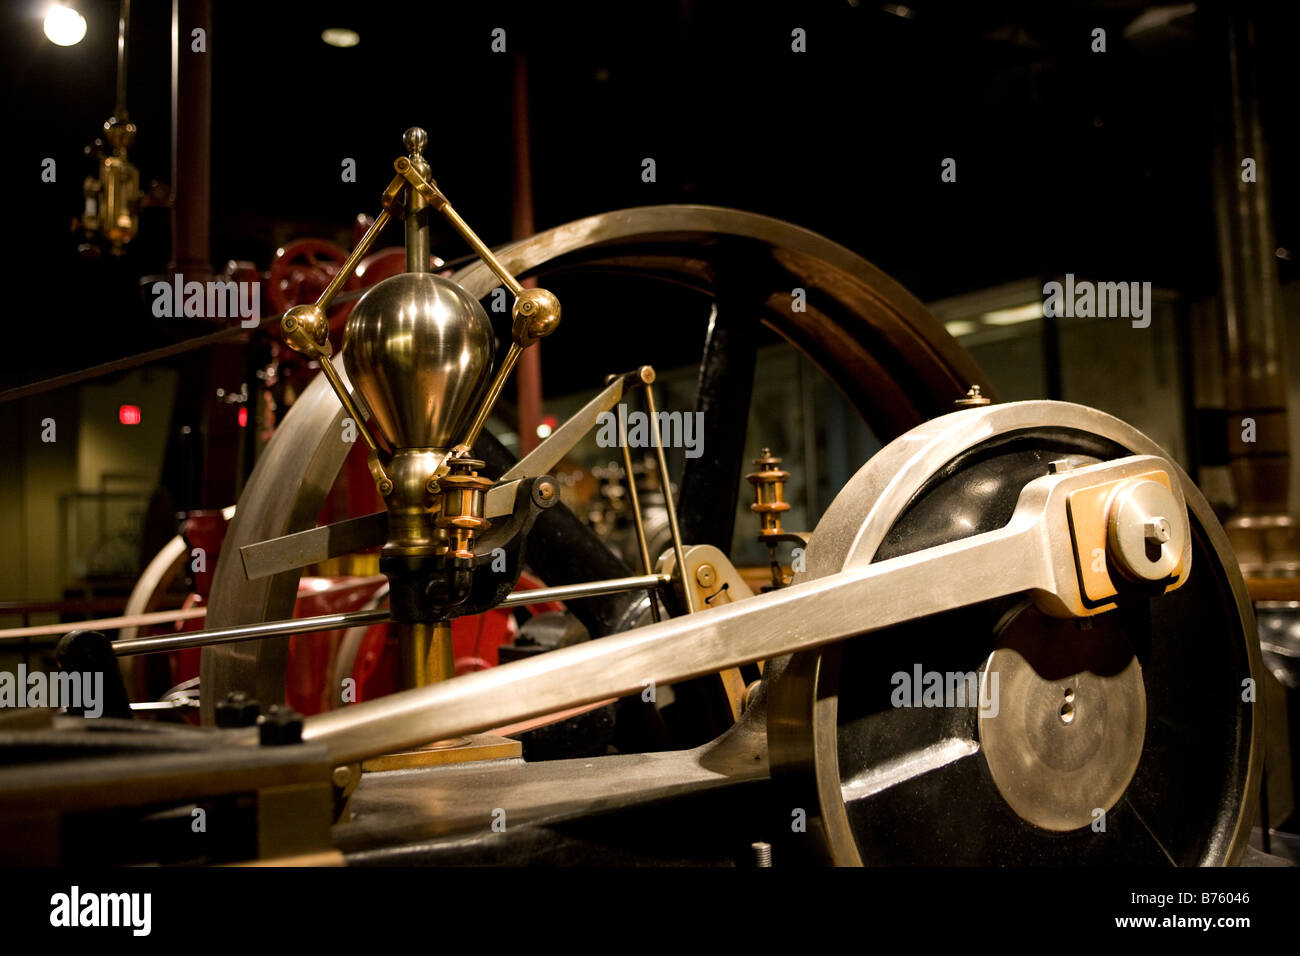 Old steam engine - Stock Image